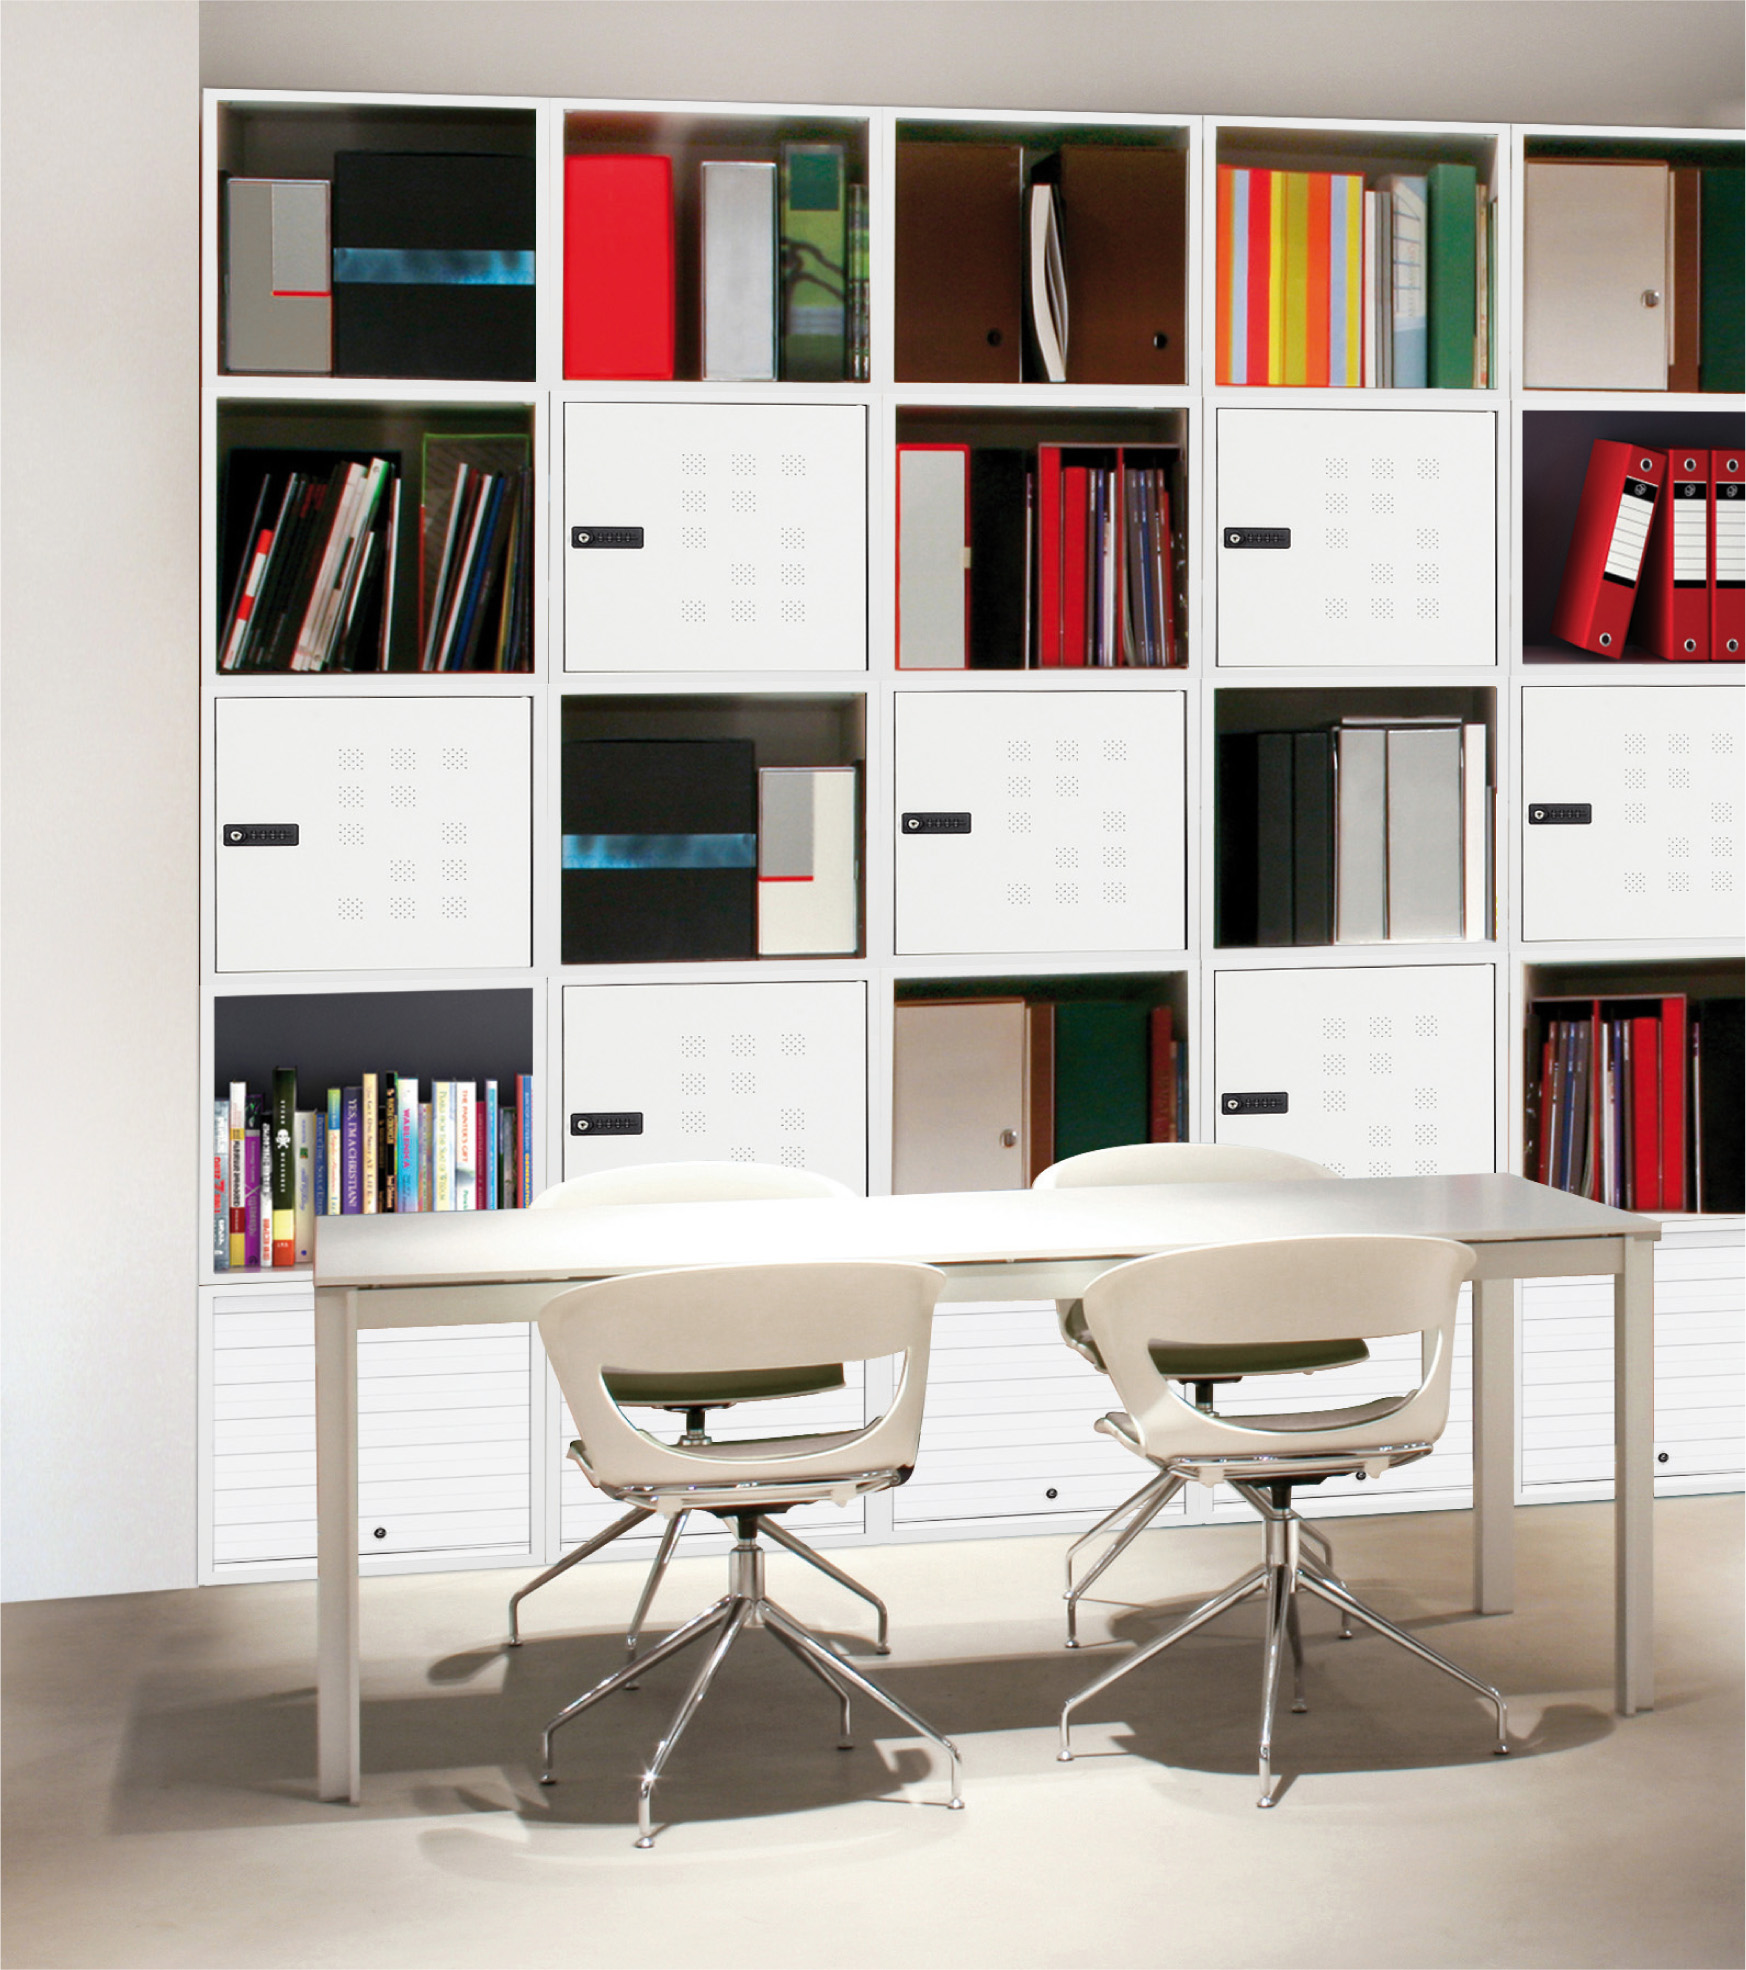 dossier armoire de bureau mobilier de bureau buzz tabbos. Black Bedroom Furniture Sets. Home Design Ideas